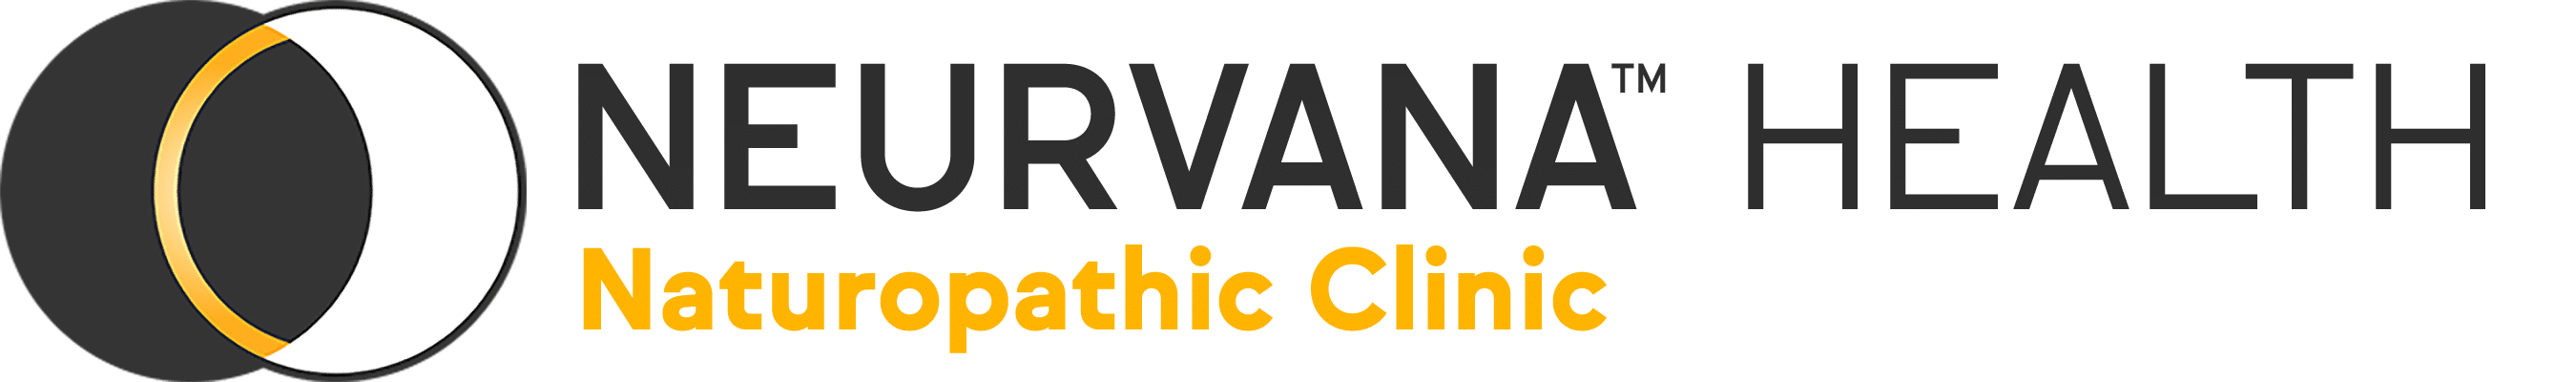 Neurvana Health Naturopathic Clinic Logo